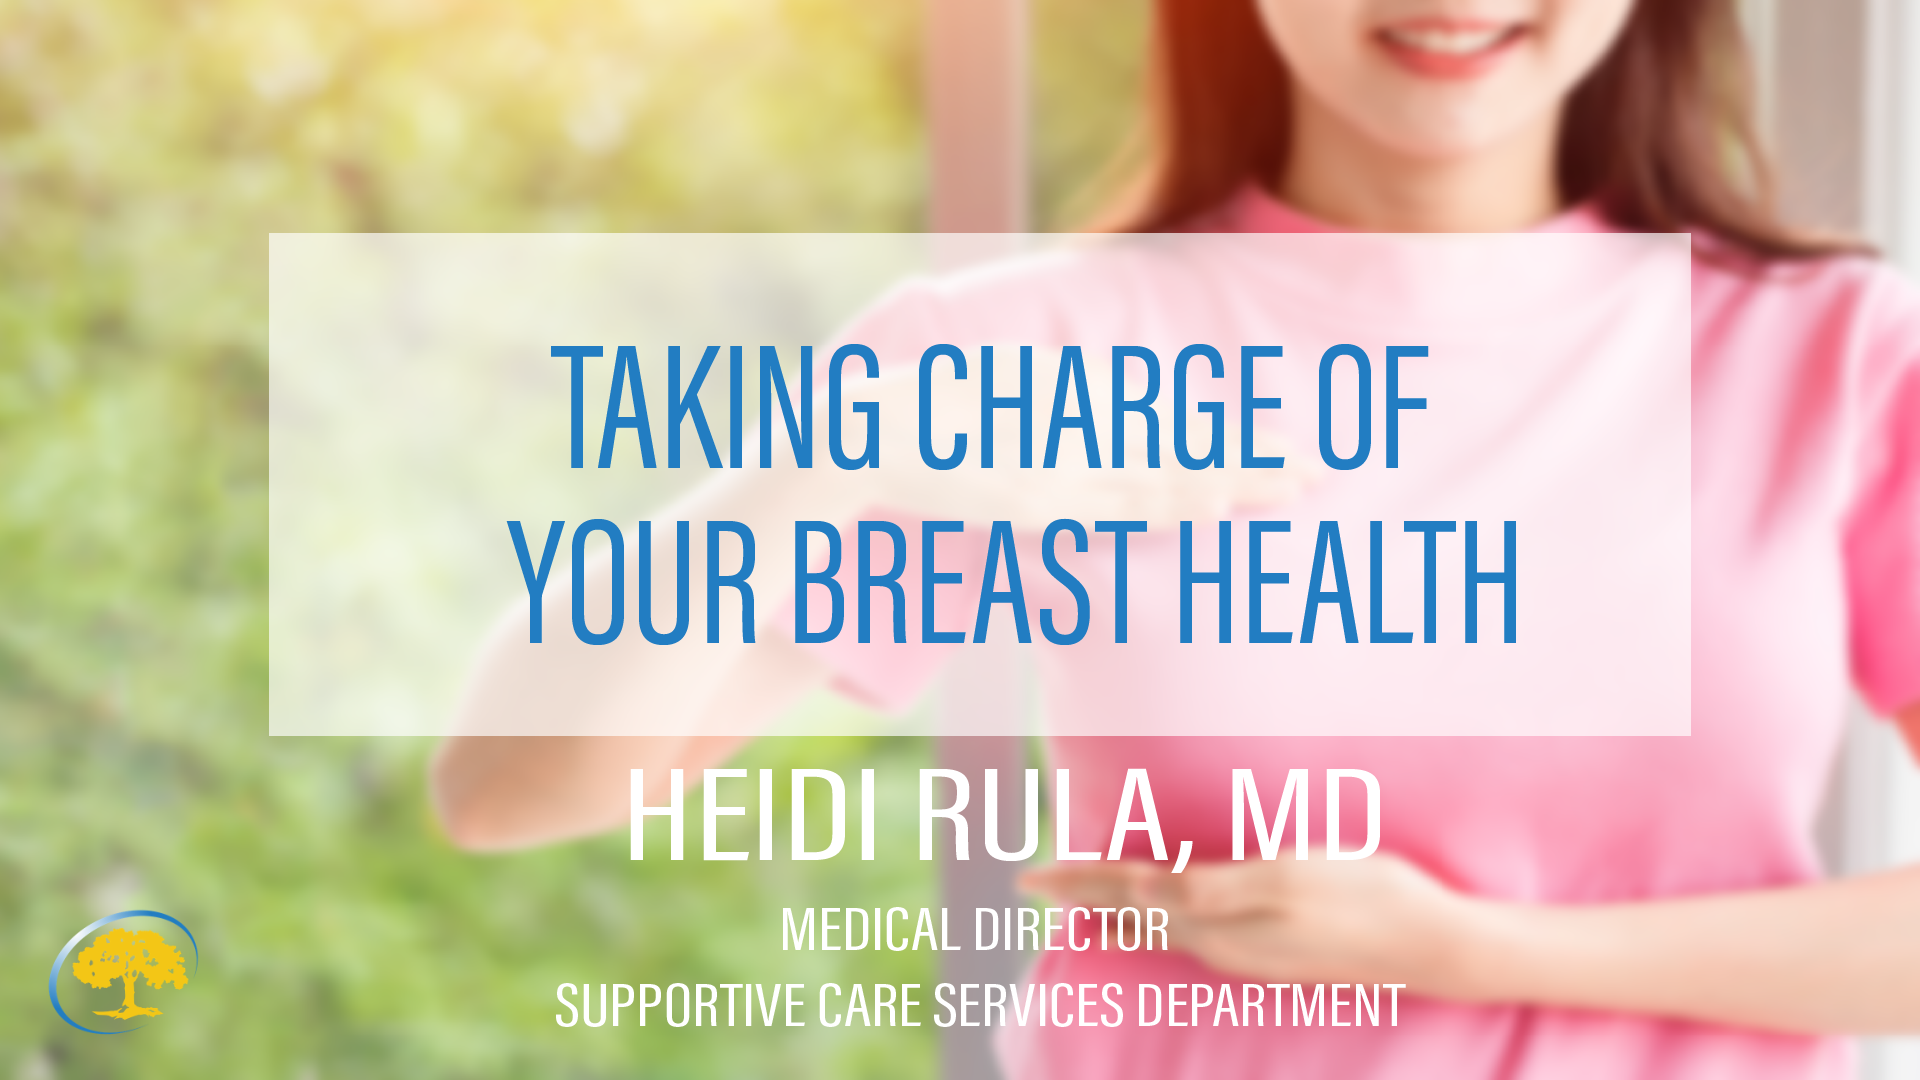 Taking Charge of Your Breast Health